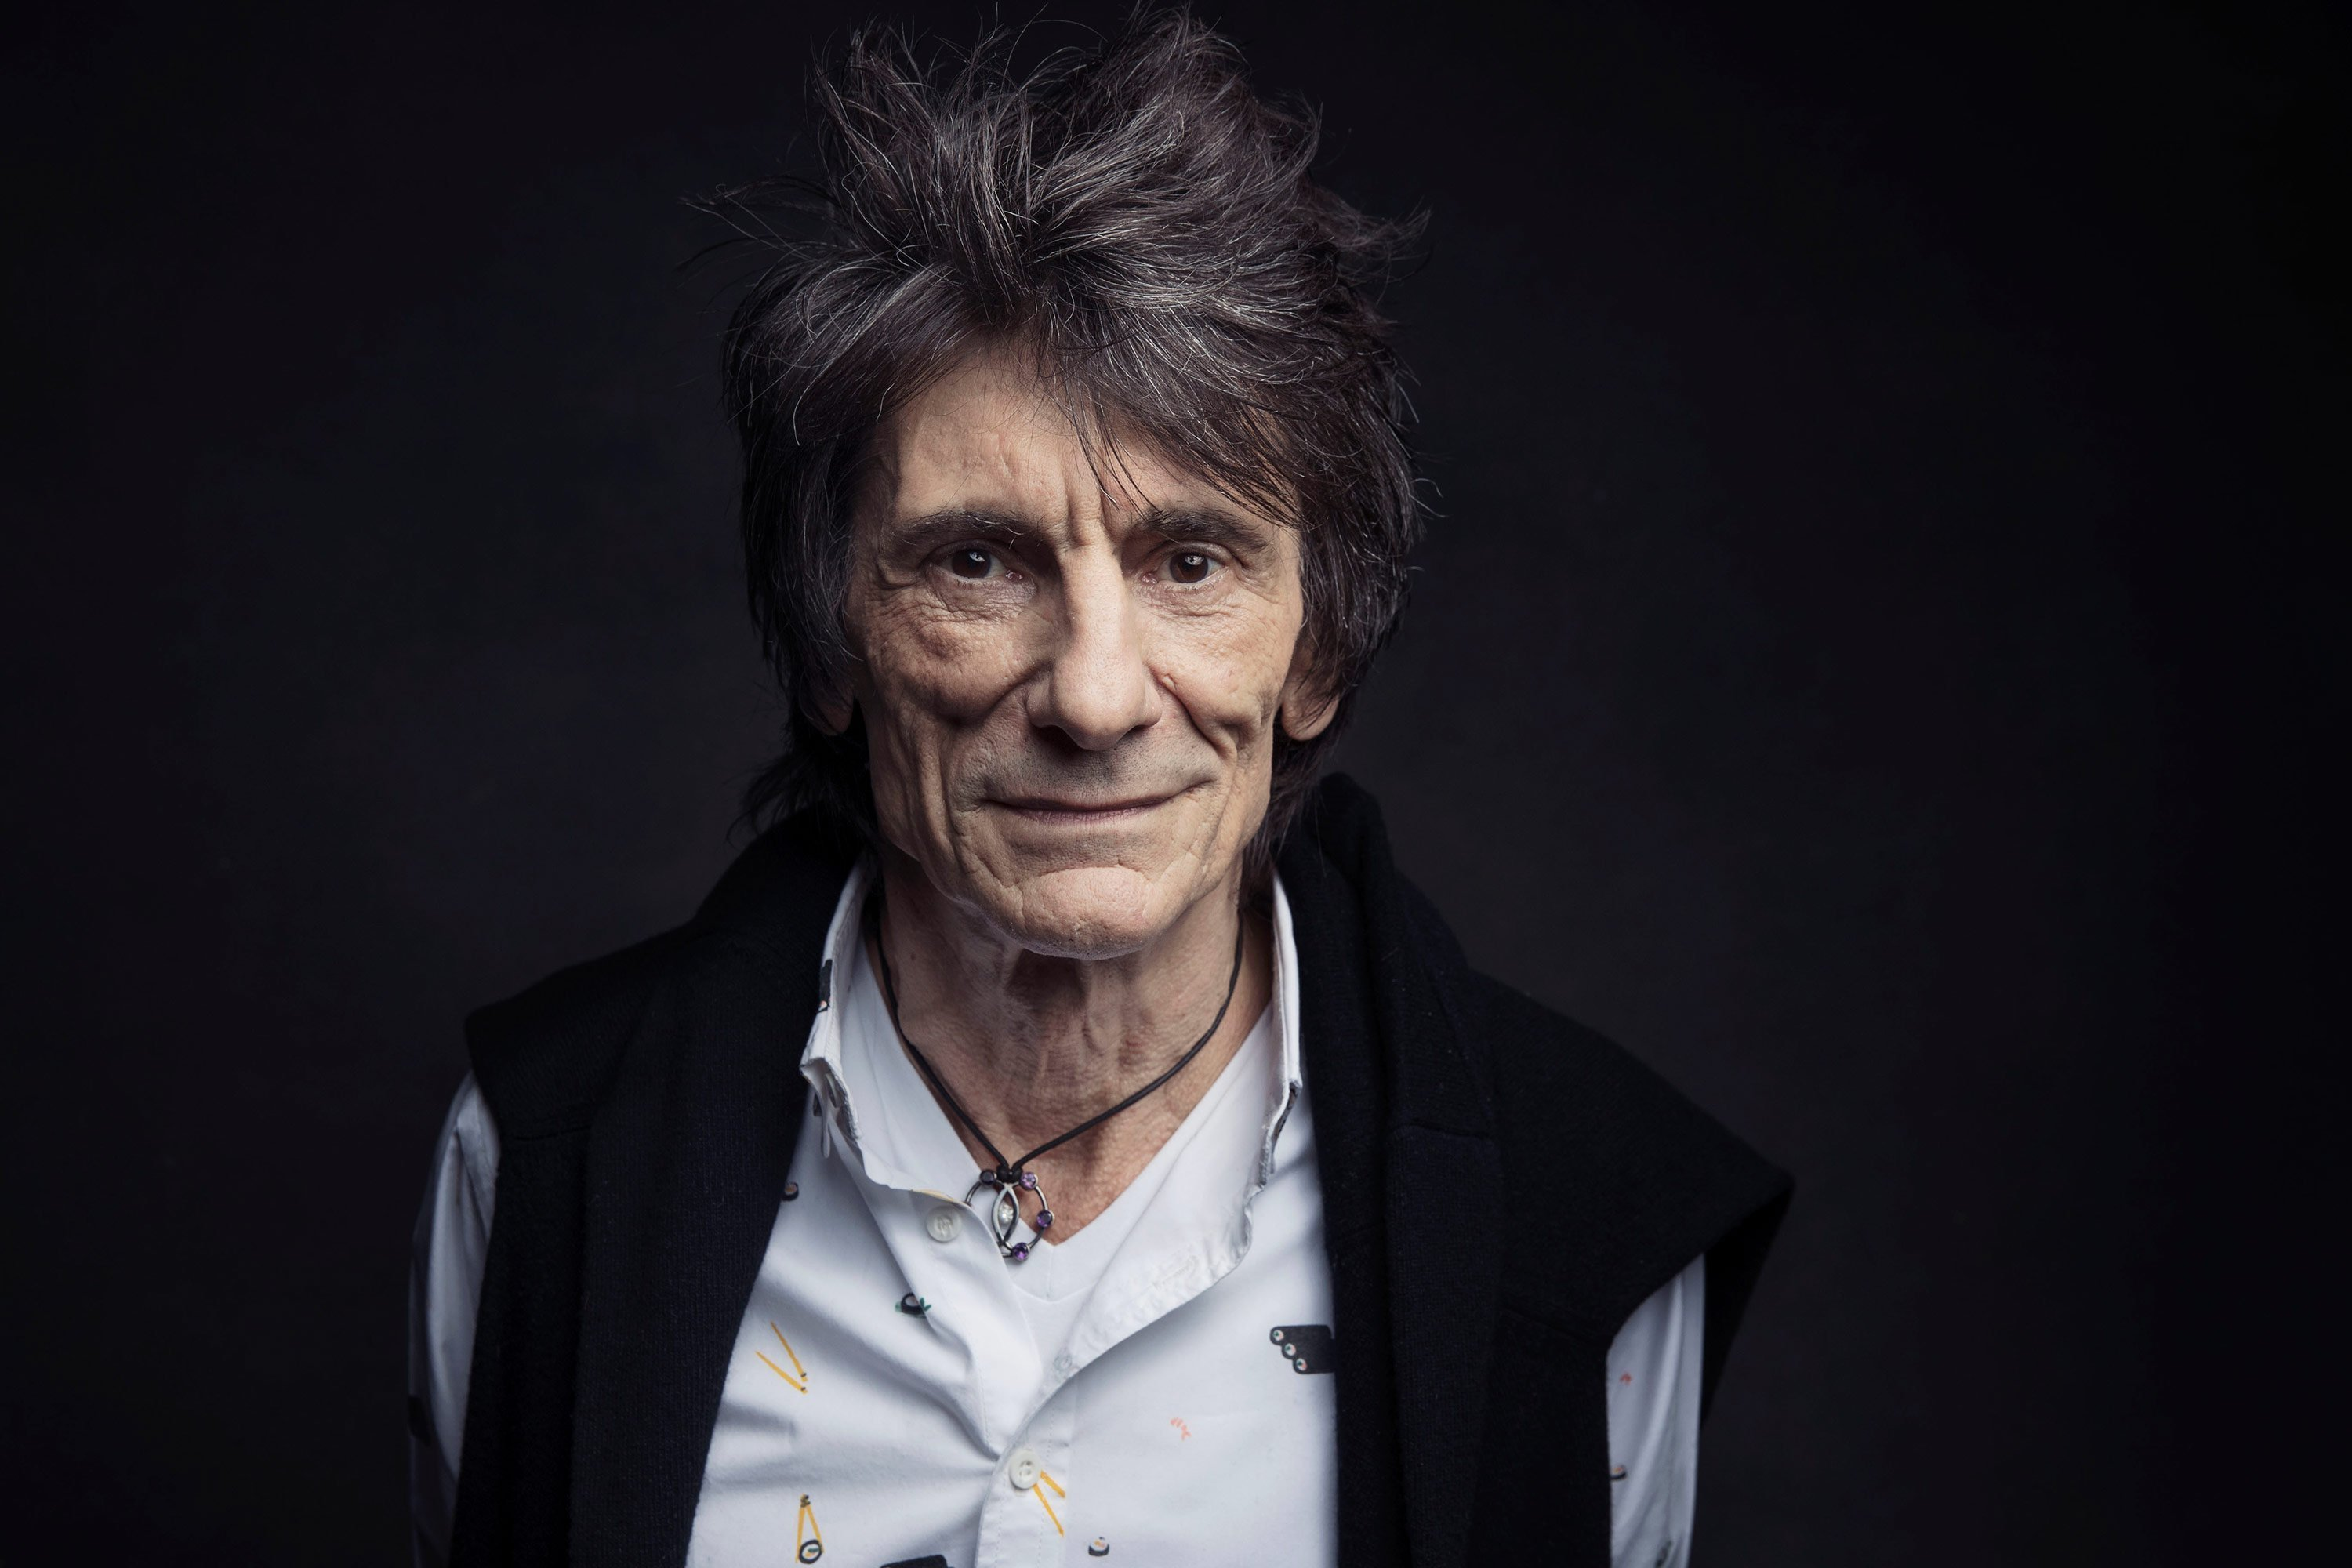 Rolling Stones guitarist Ronnie Wood reveals his fight with cancer